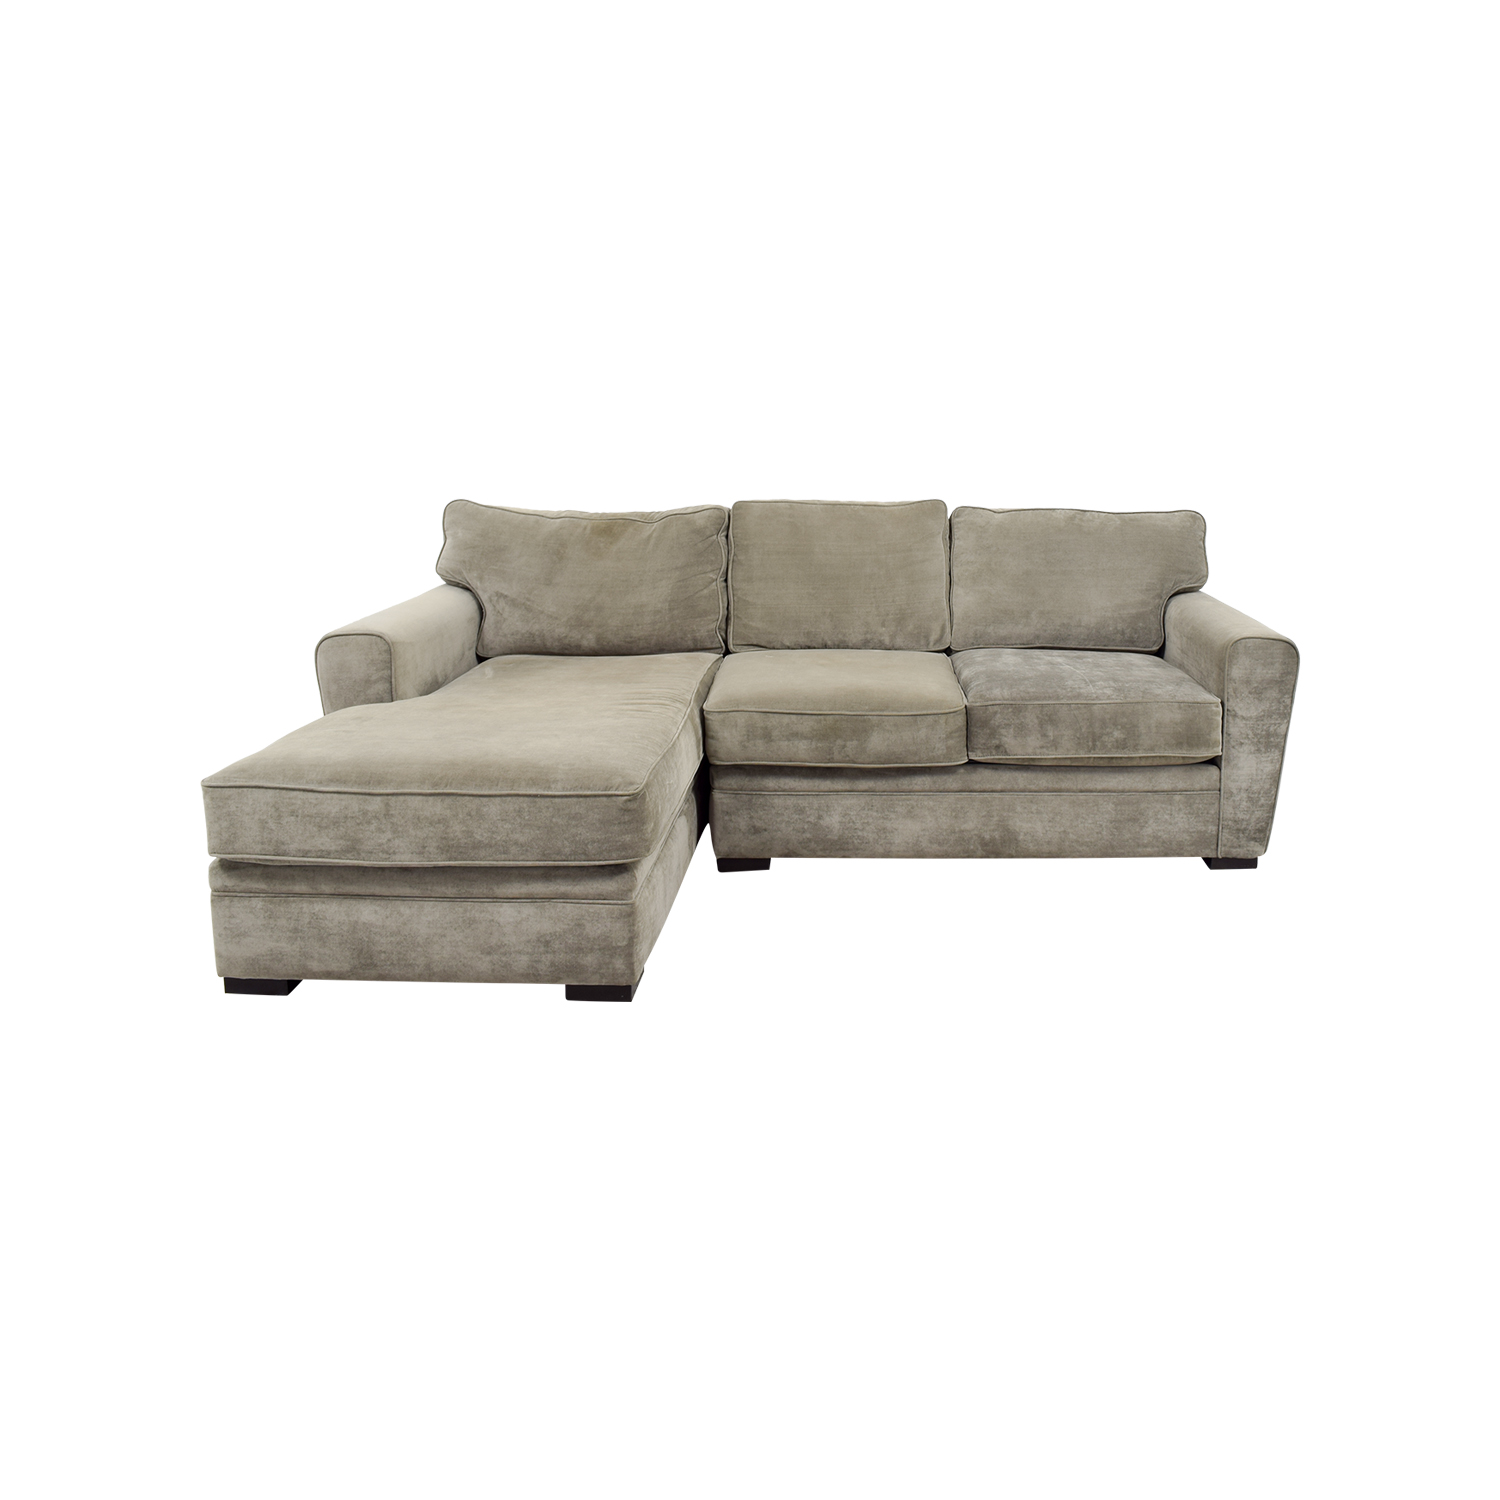 shop Crate and Barrel Gray Velvet Chaise Sectional Crate and Barrel Sofas  sc 1 st  Furnishare : grey chaise sectional - Sectionals, Sofas & Couches